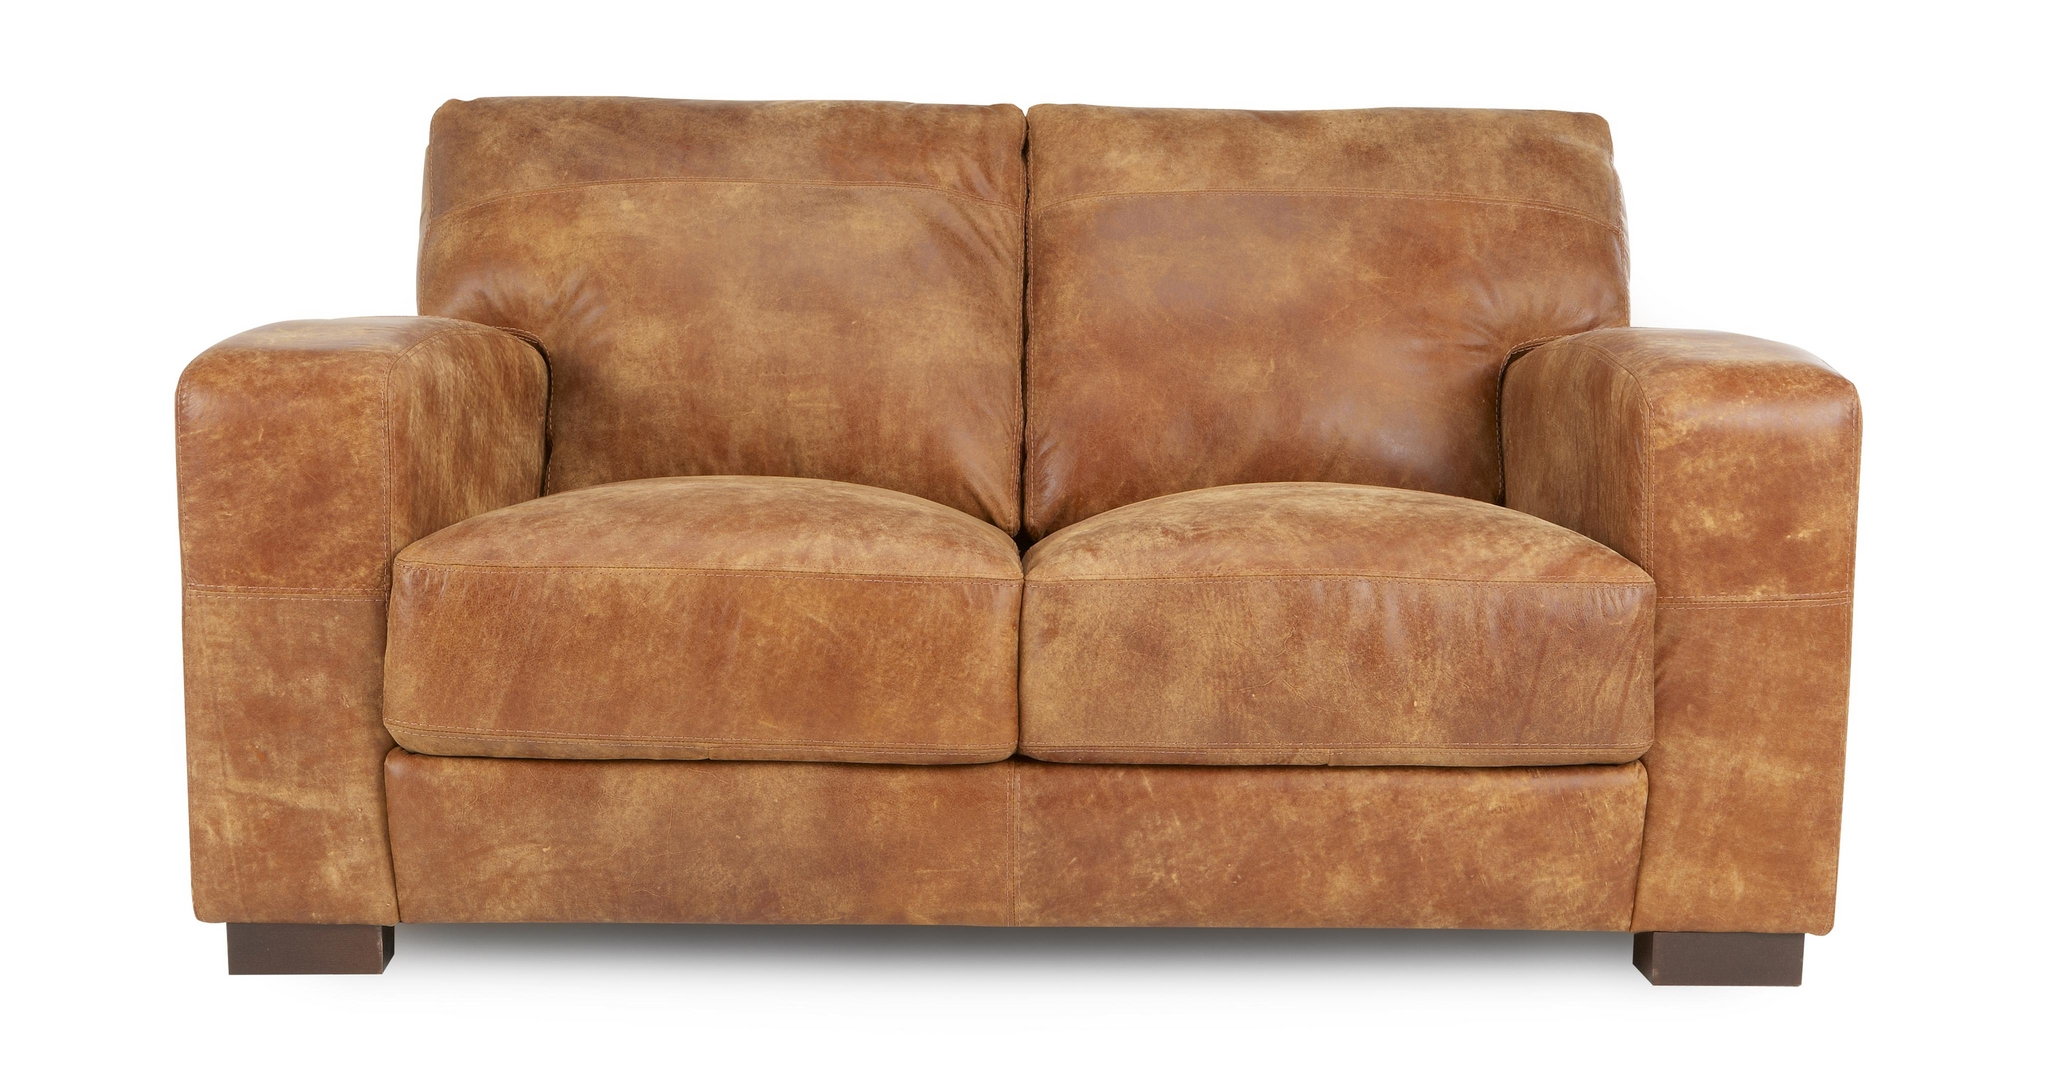 Dfs Tan Leather Couch Seat Stool